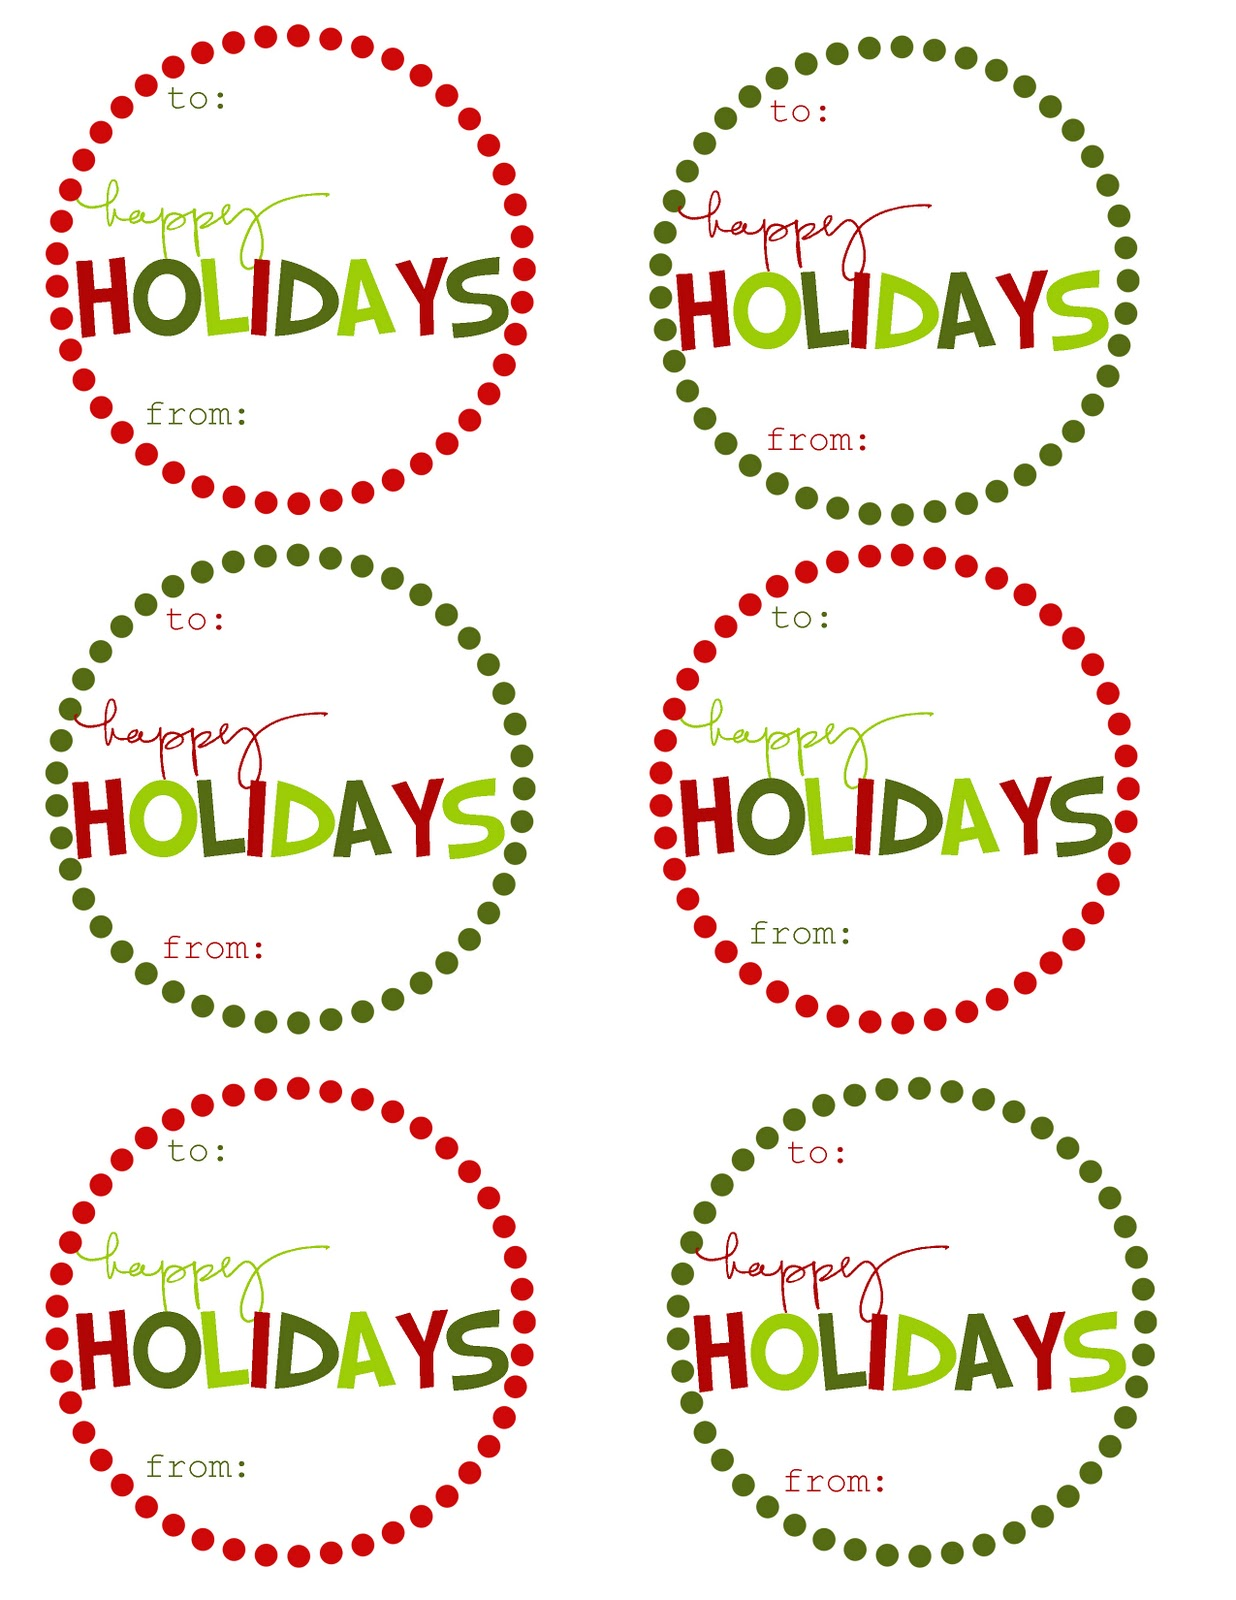 Simplicity image with holiday tags printable